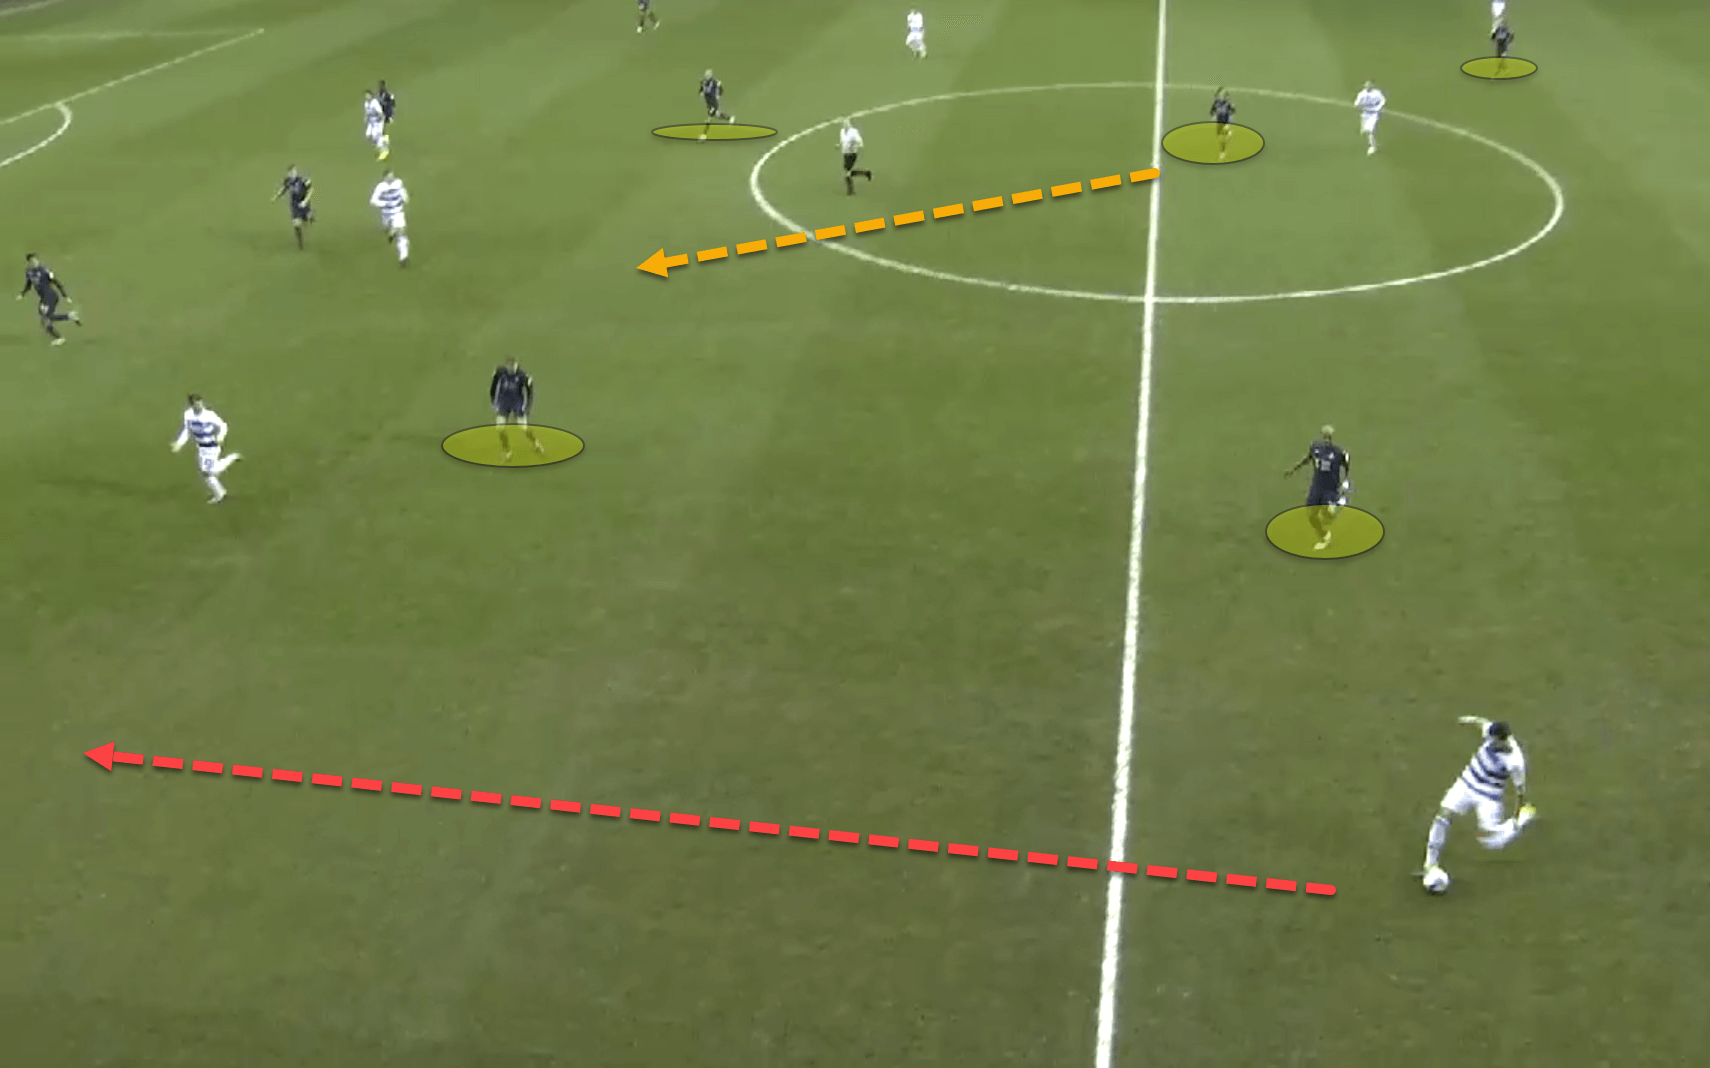 How Swansea City are defying all metrics en route to the Premier League